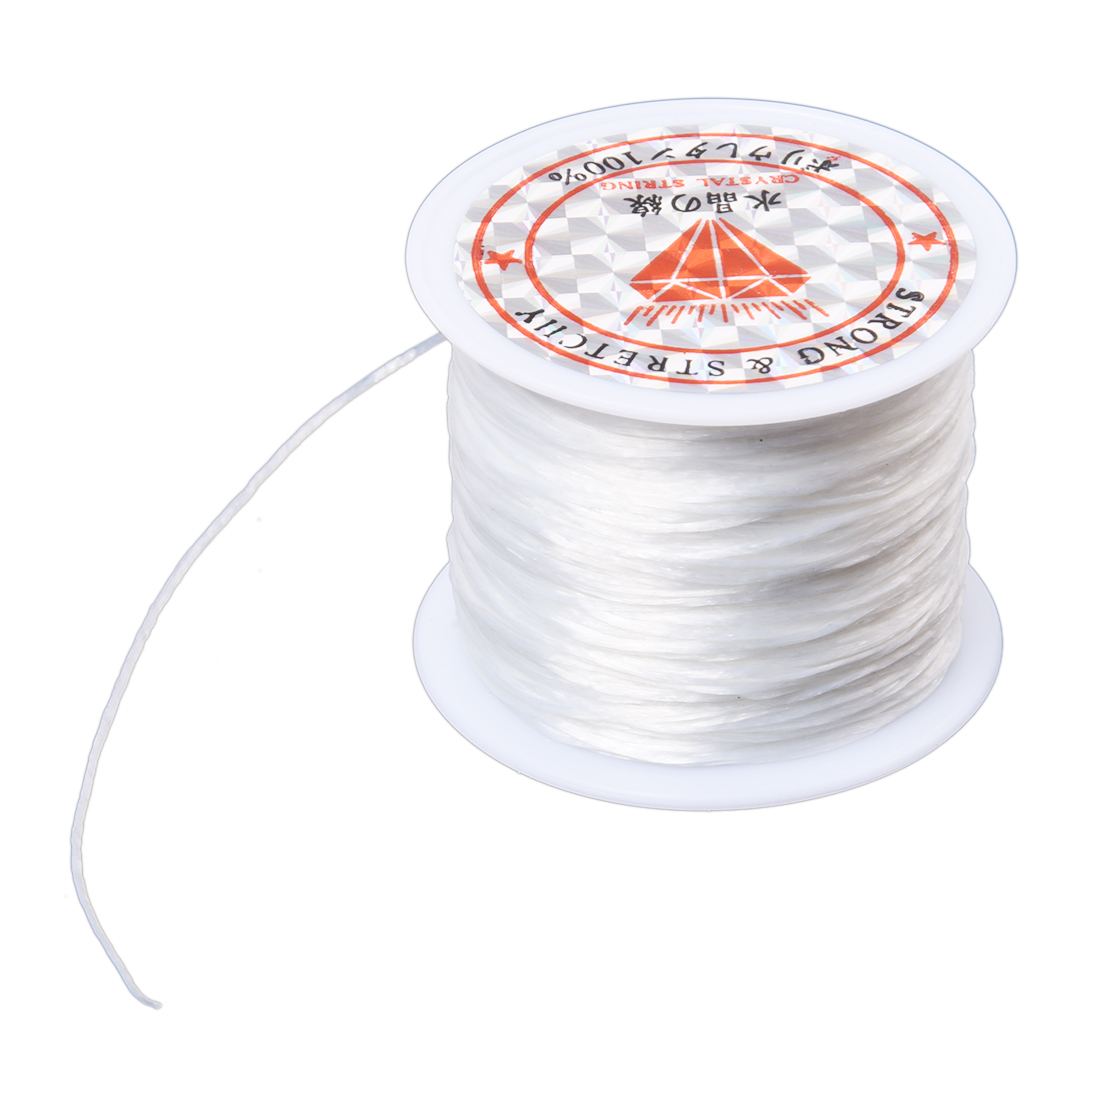 5pack x (White Elastic Stretchy Crystal Line Jewelry Beading Thread Spool 100 Meters